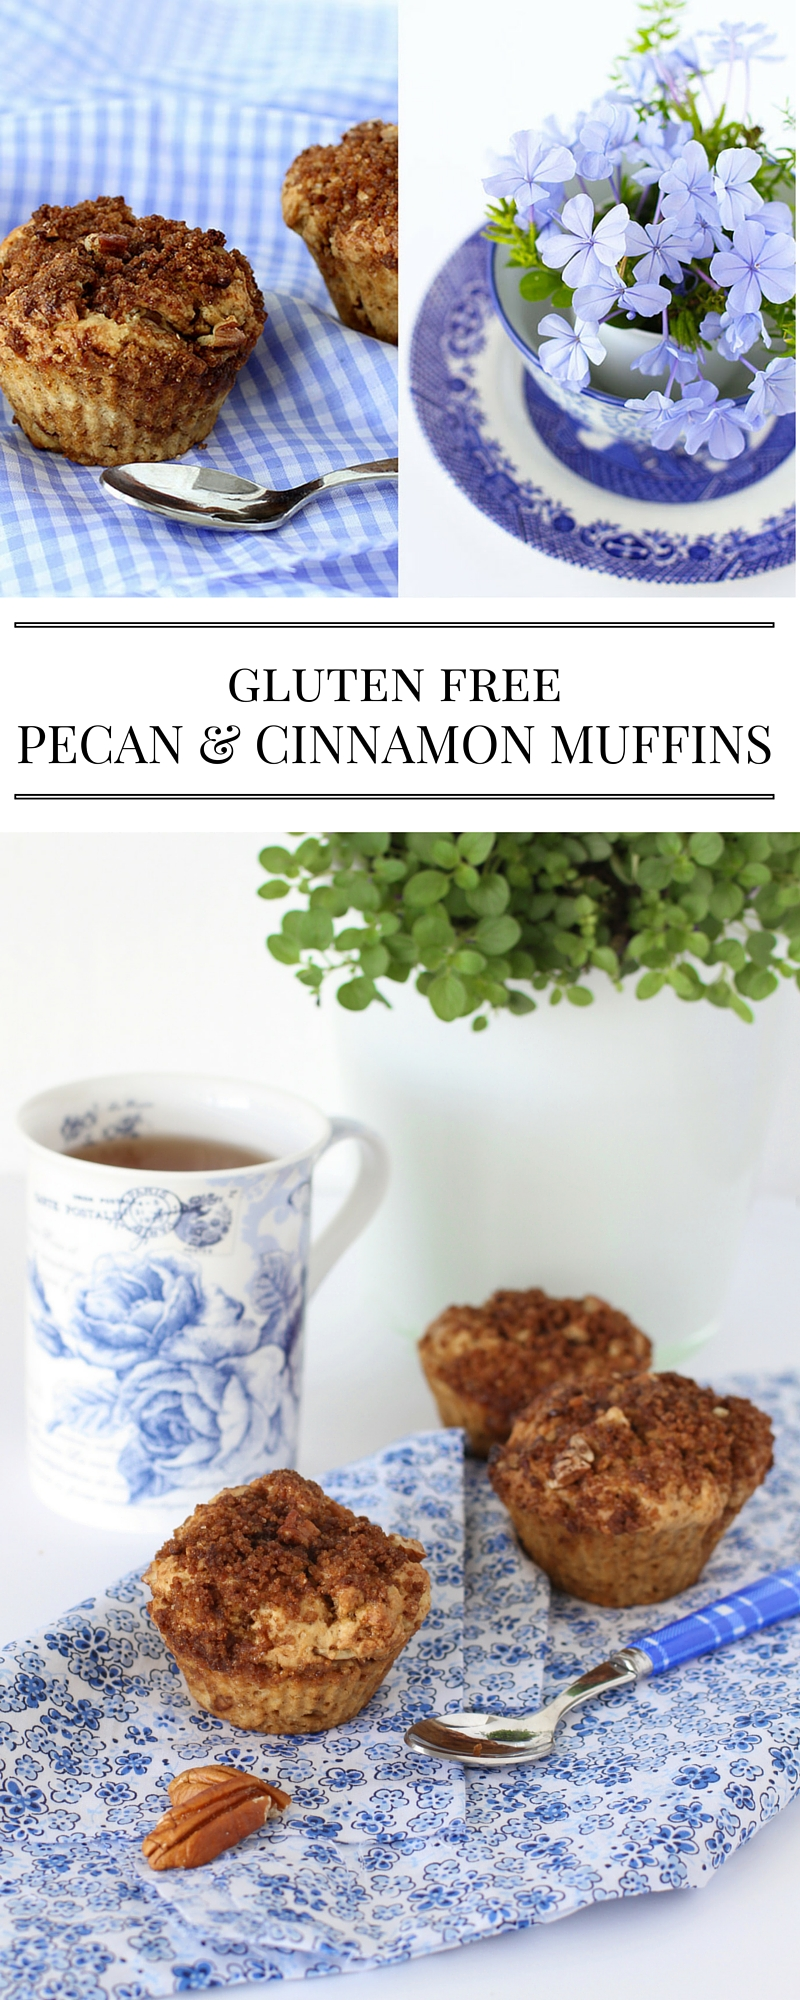 gluten free pecan and cinnamon muffins